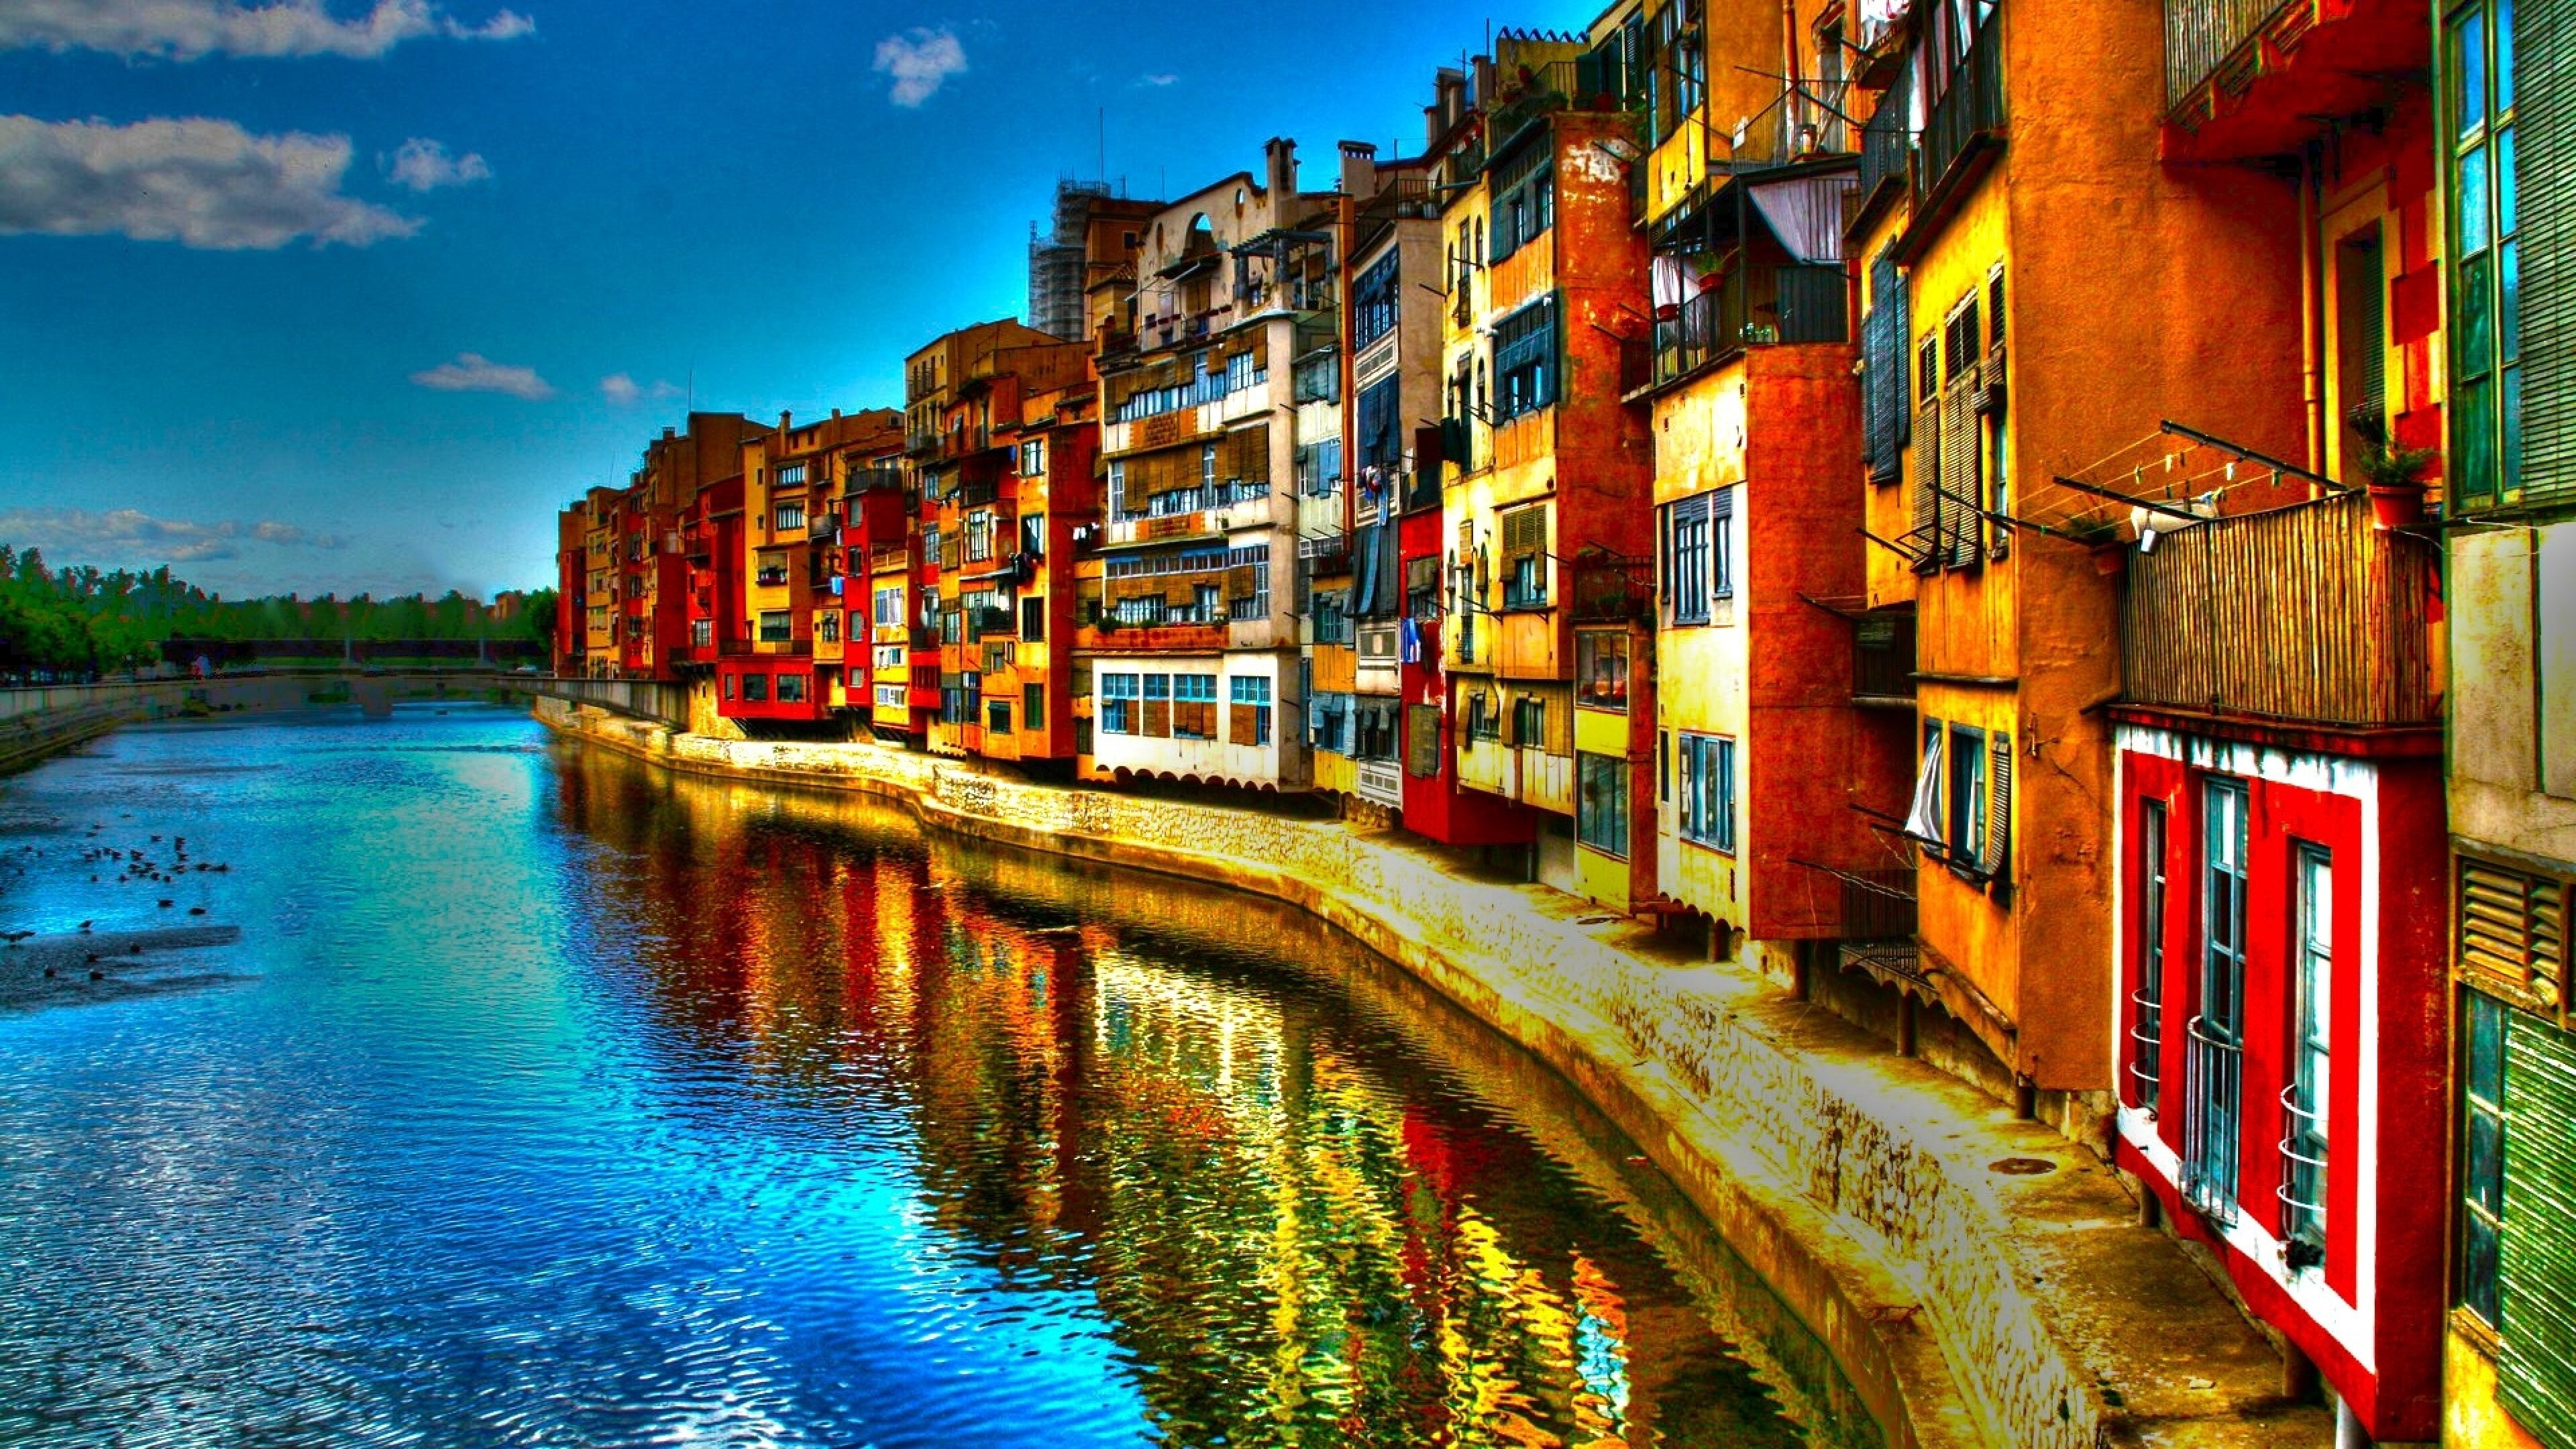 Amazing 4k wallpapers of italy country hd wallpapers - Amazing 4k wallpapers for pc ...